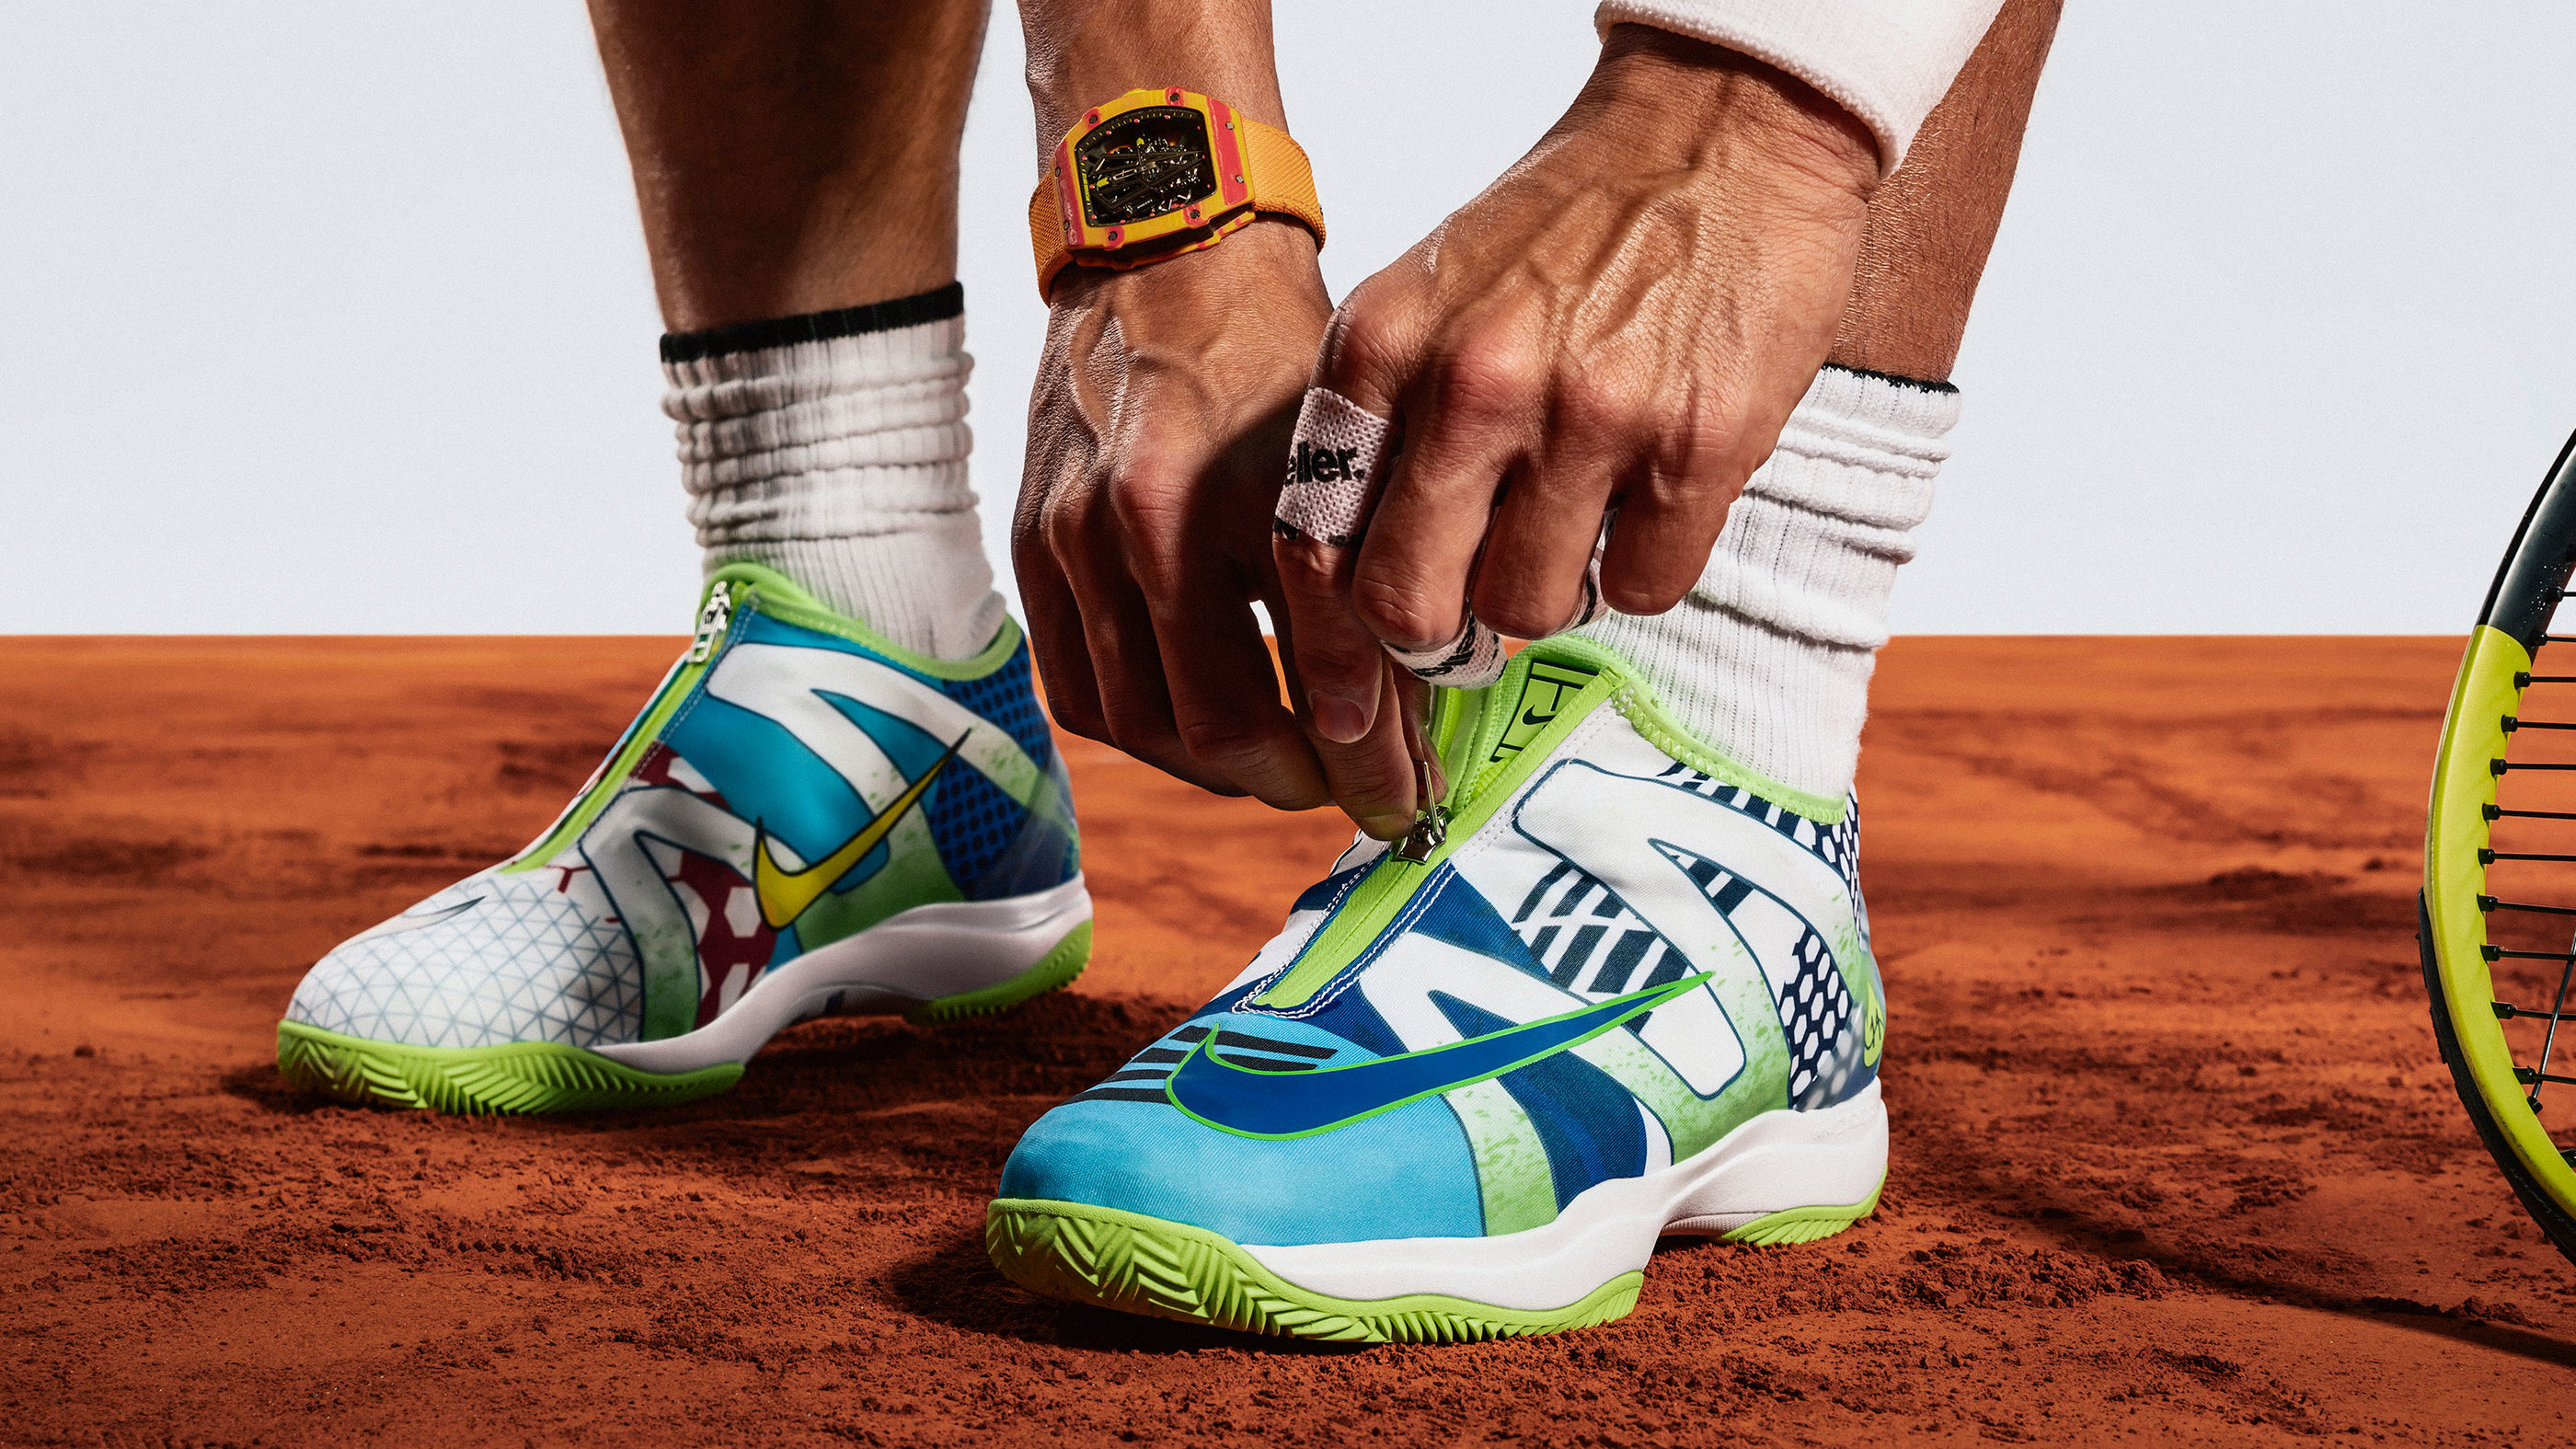 b1c431a2593 NikeCourt Cage 3 Glove 'What the Rafa' Release Date | Sole Collector